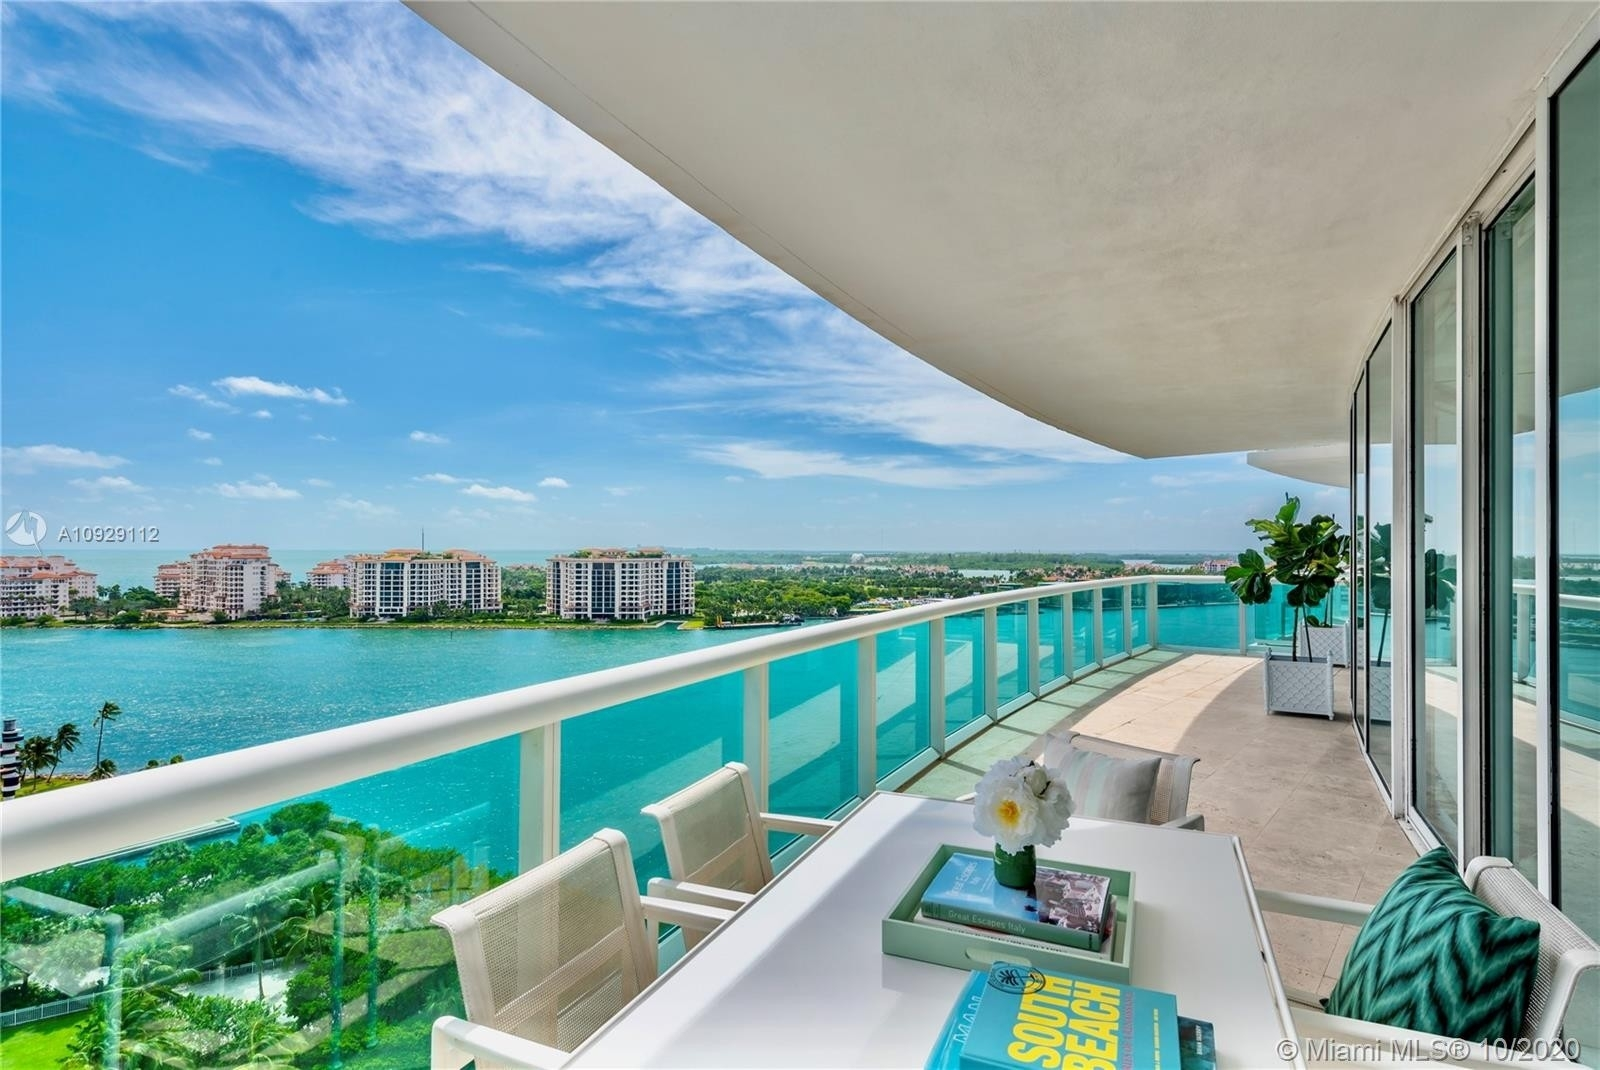 Condominium en 1000 S Pointe Dr , 1605 Miami Beach